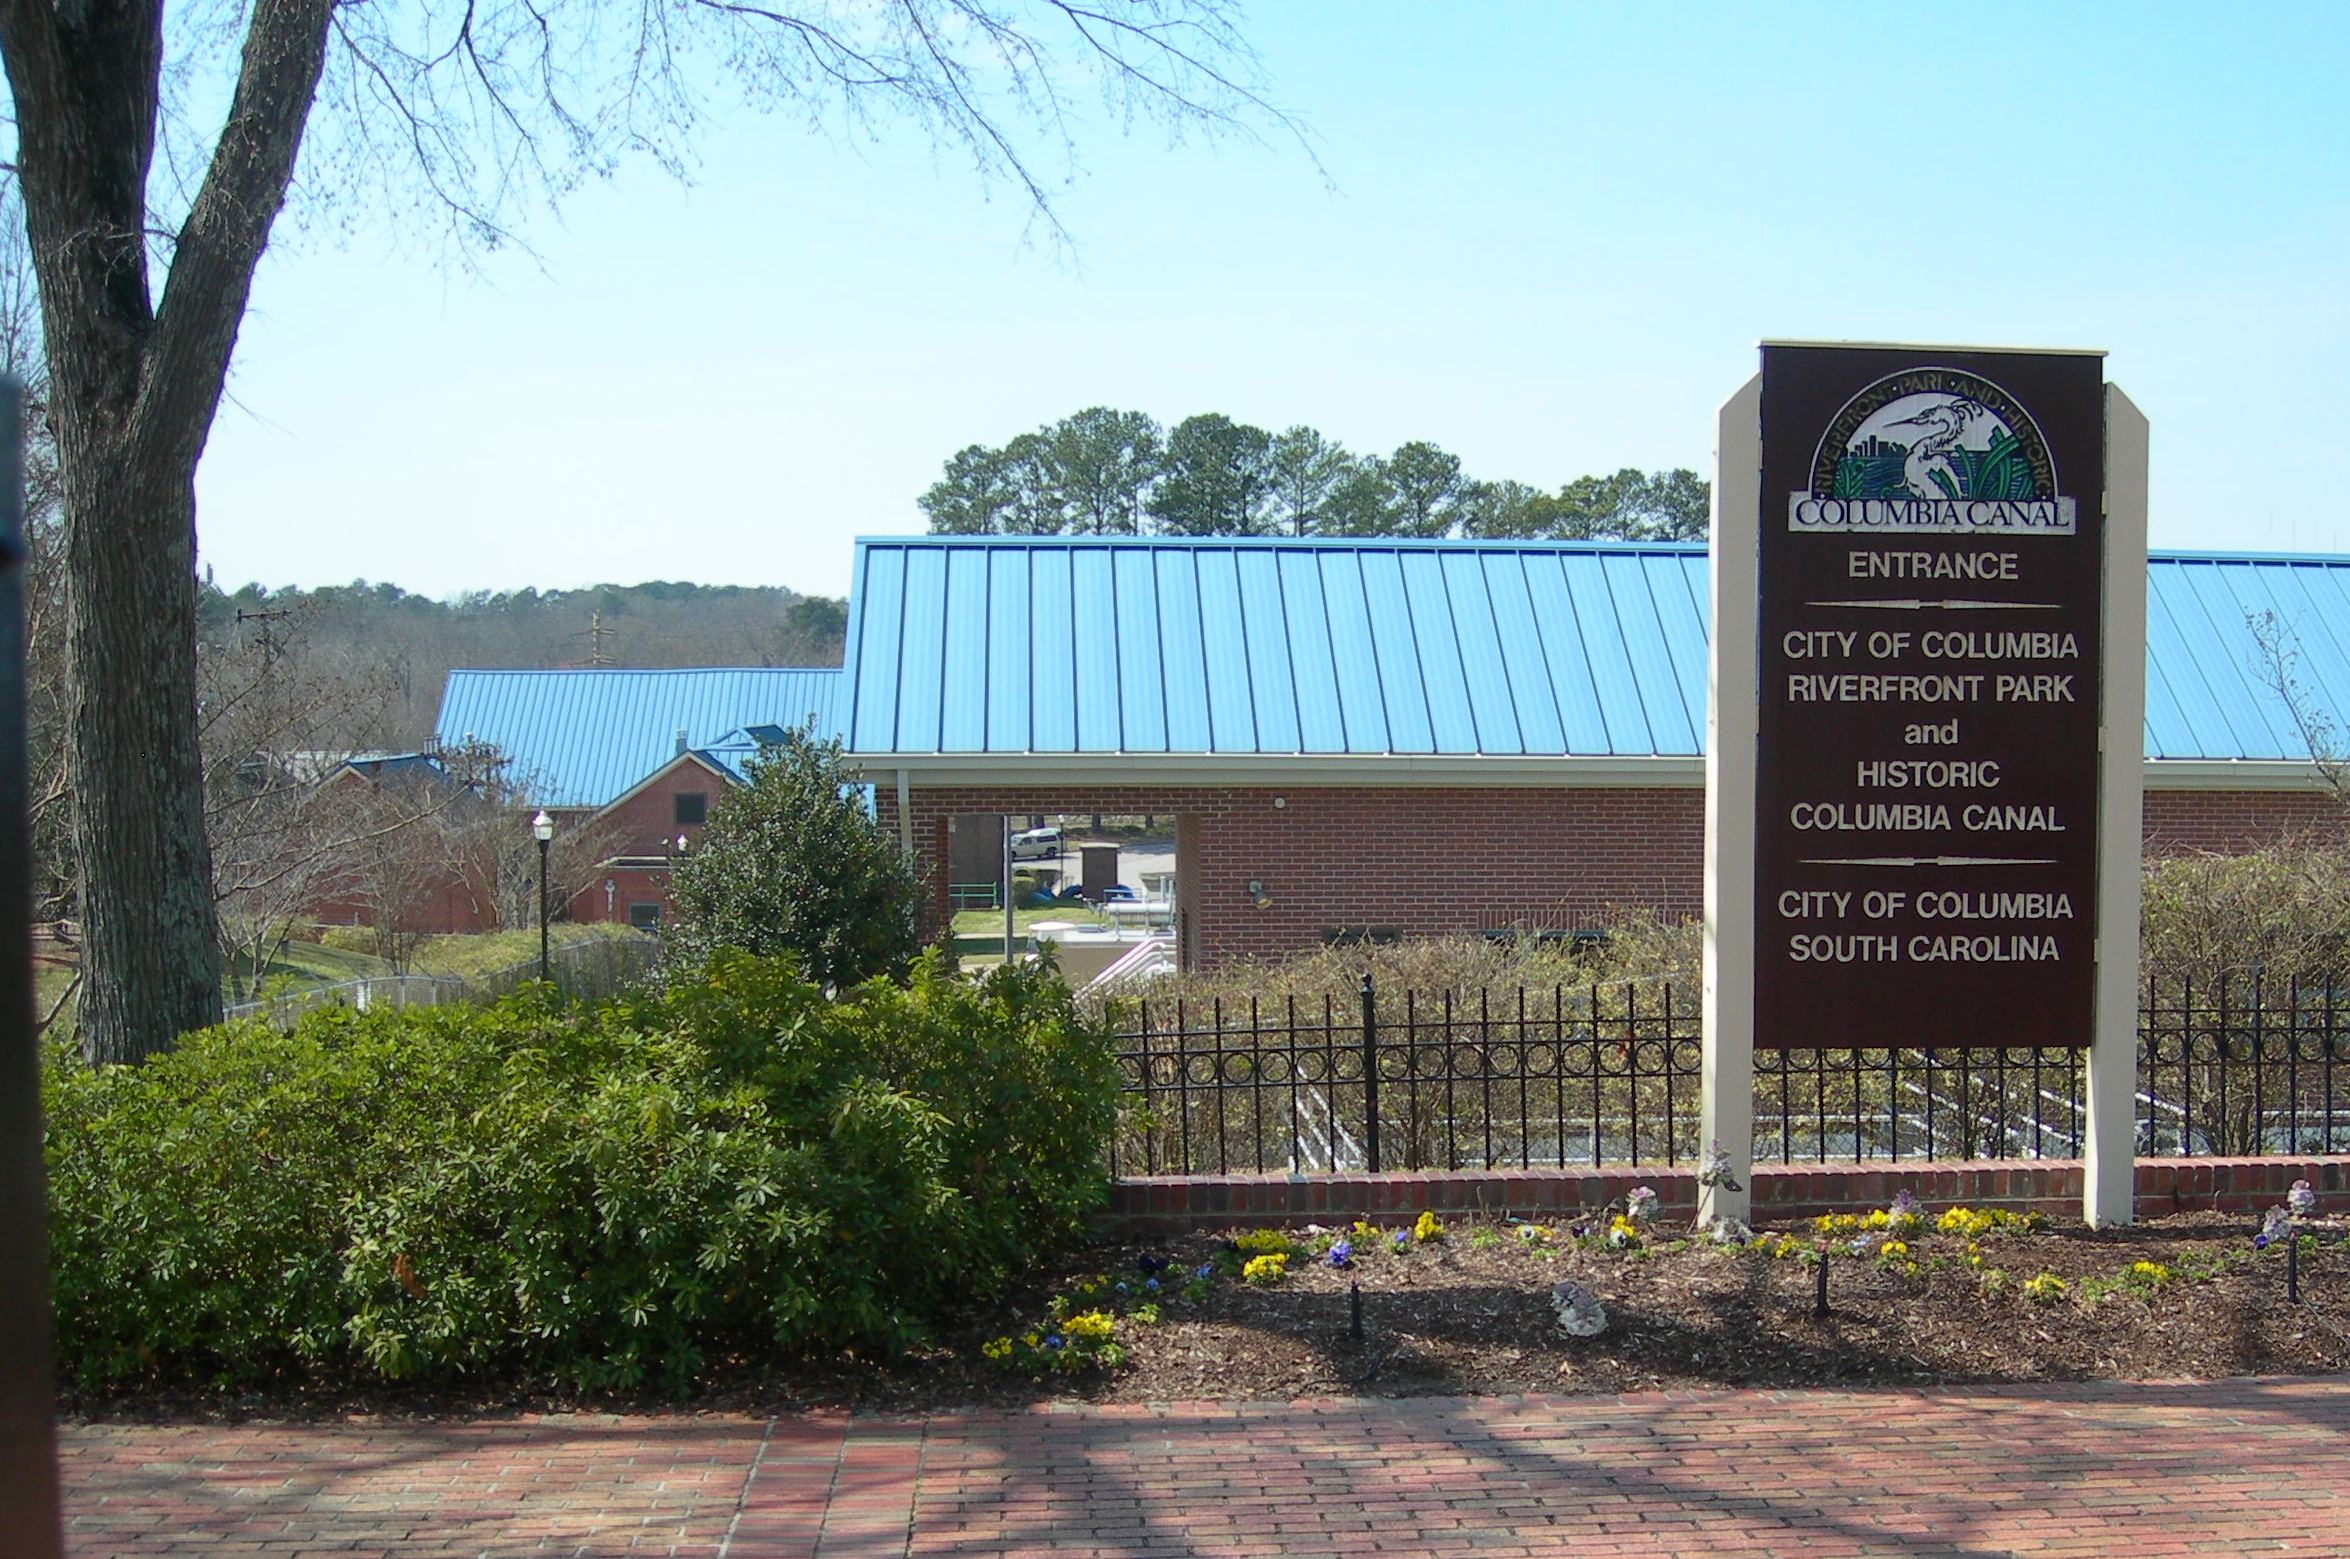 Upcountry History Museum The Midlands and Upstate, Riverfront Park and Historic Columbia Canal, The Midlands and ...